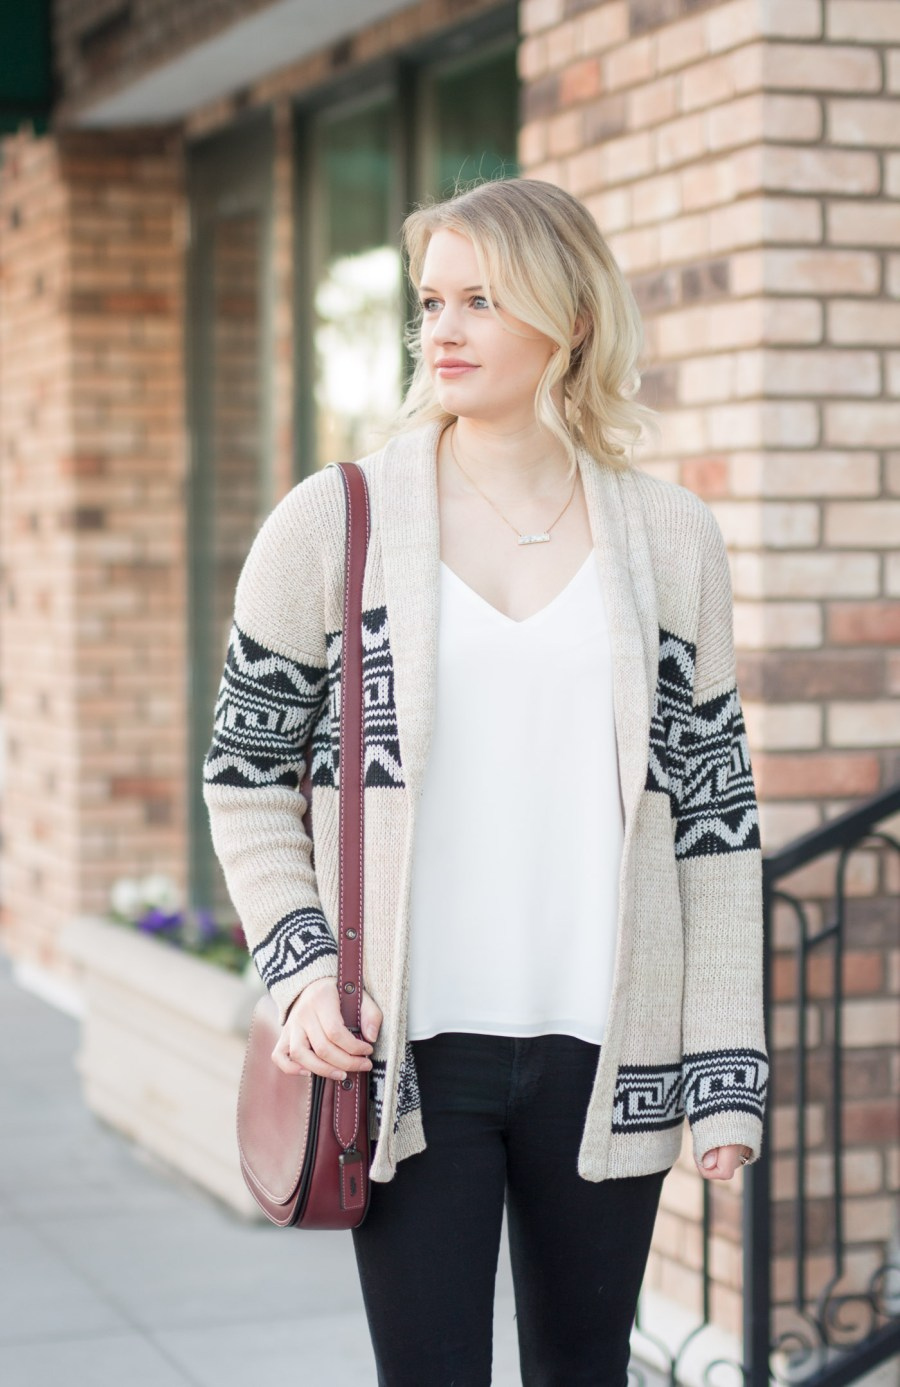 Designer Handbags Under $500 That Are Worth The Investment, Coach saddlebag, fashion blog, Treats and Trends, fall outfit, winter outfit